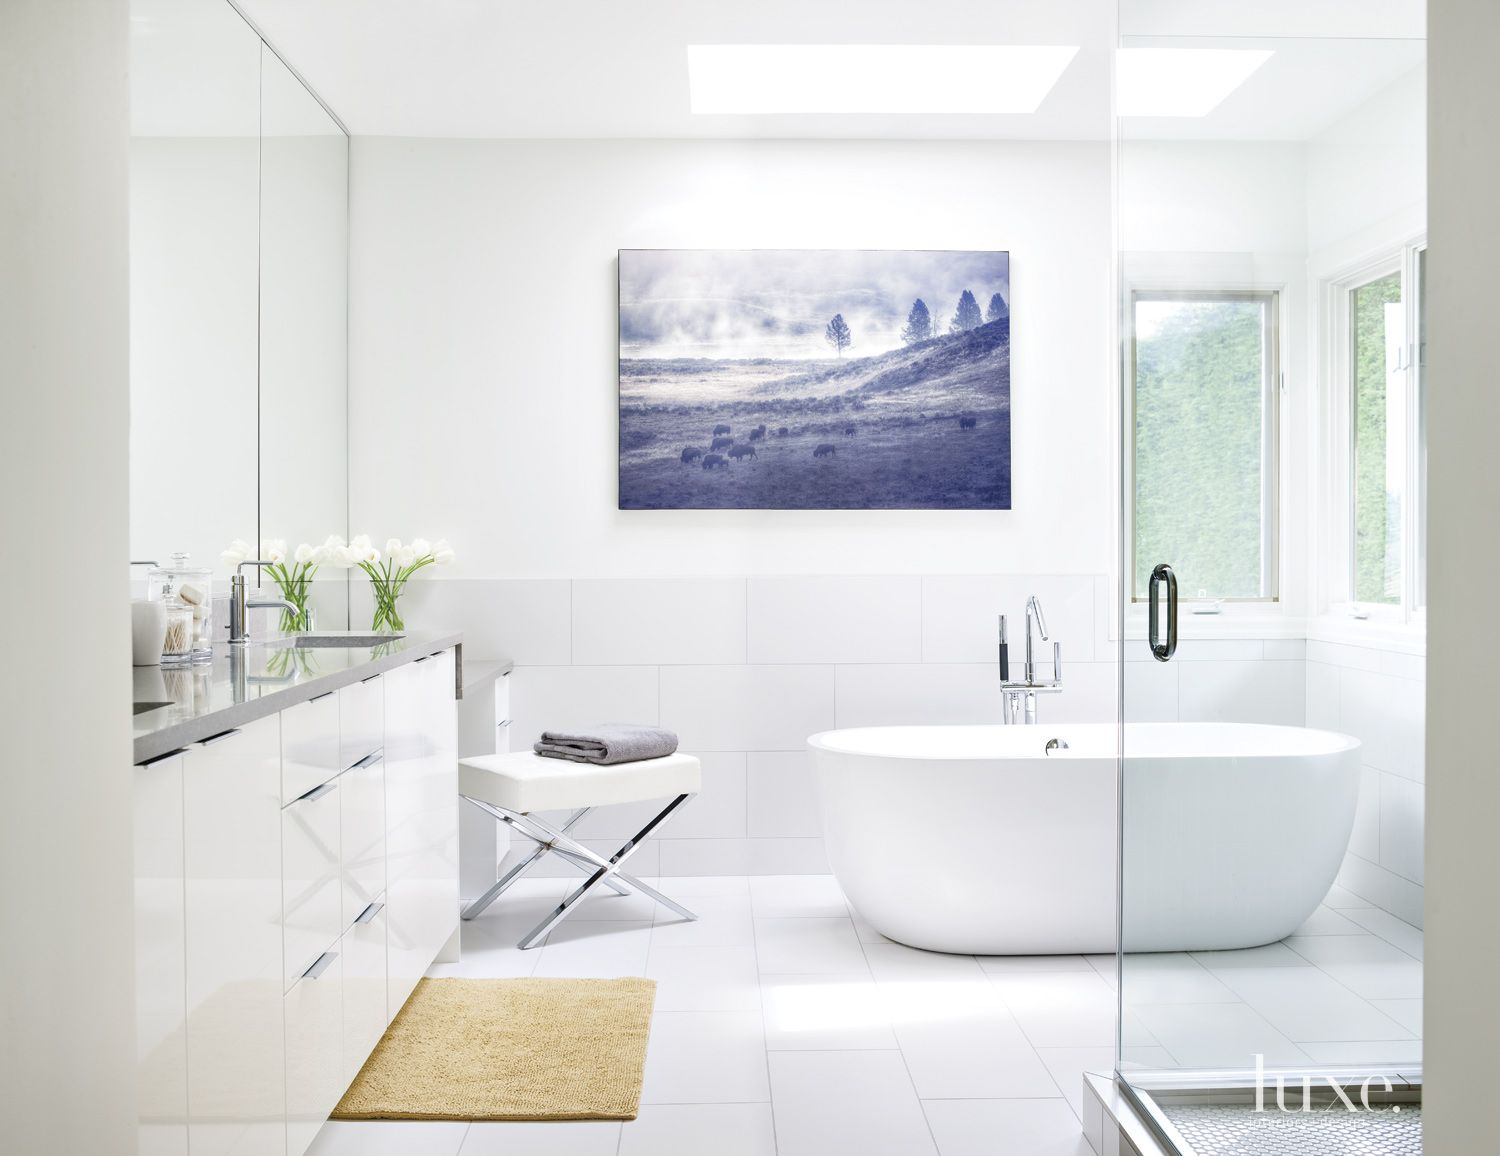 Modern White Bathroom with Bison Photography